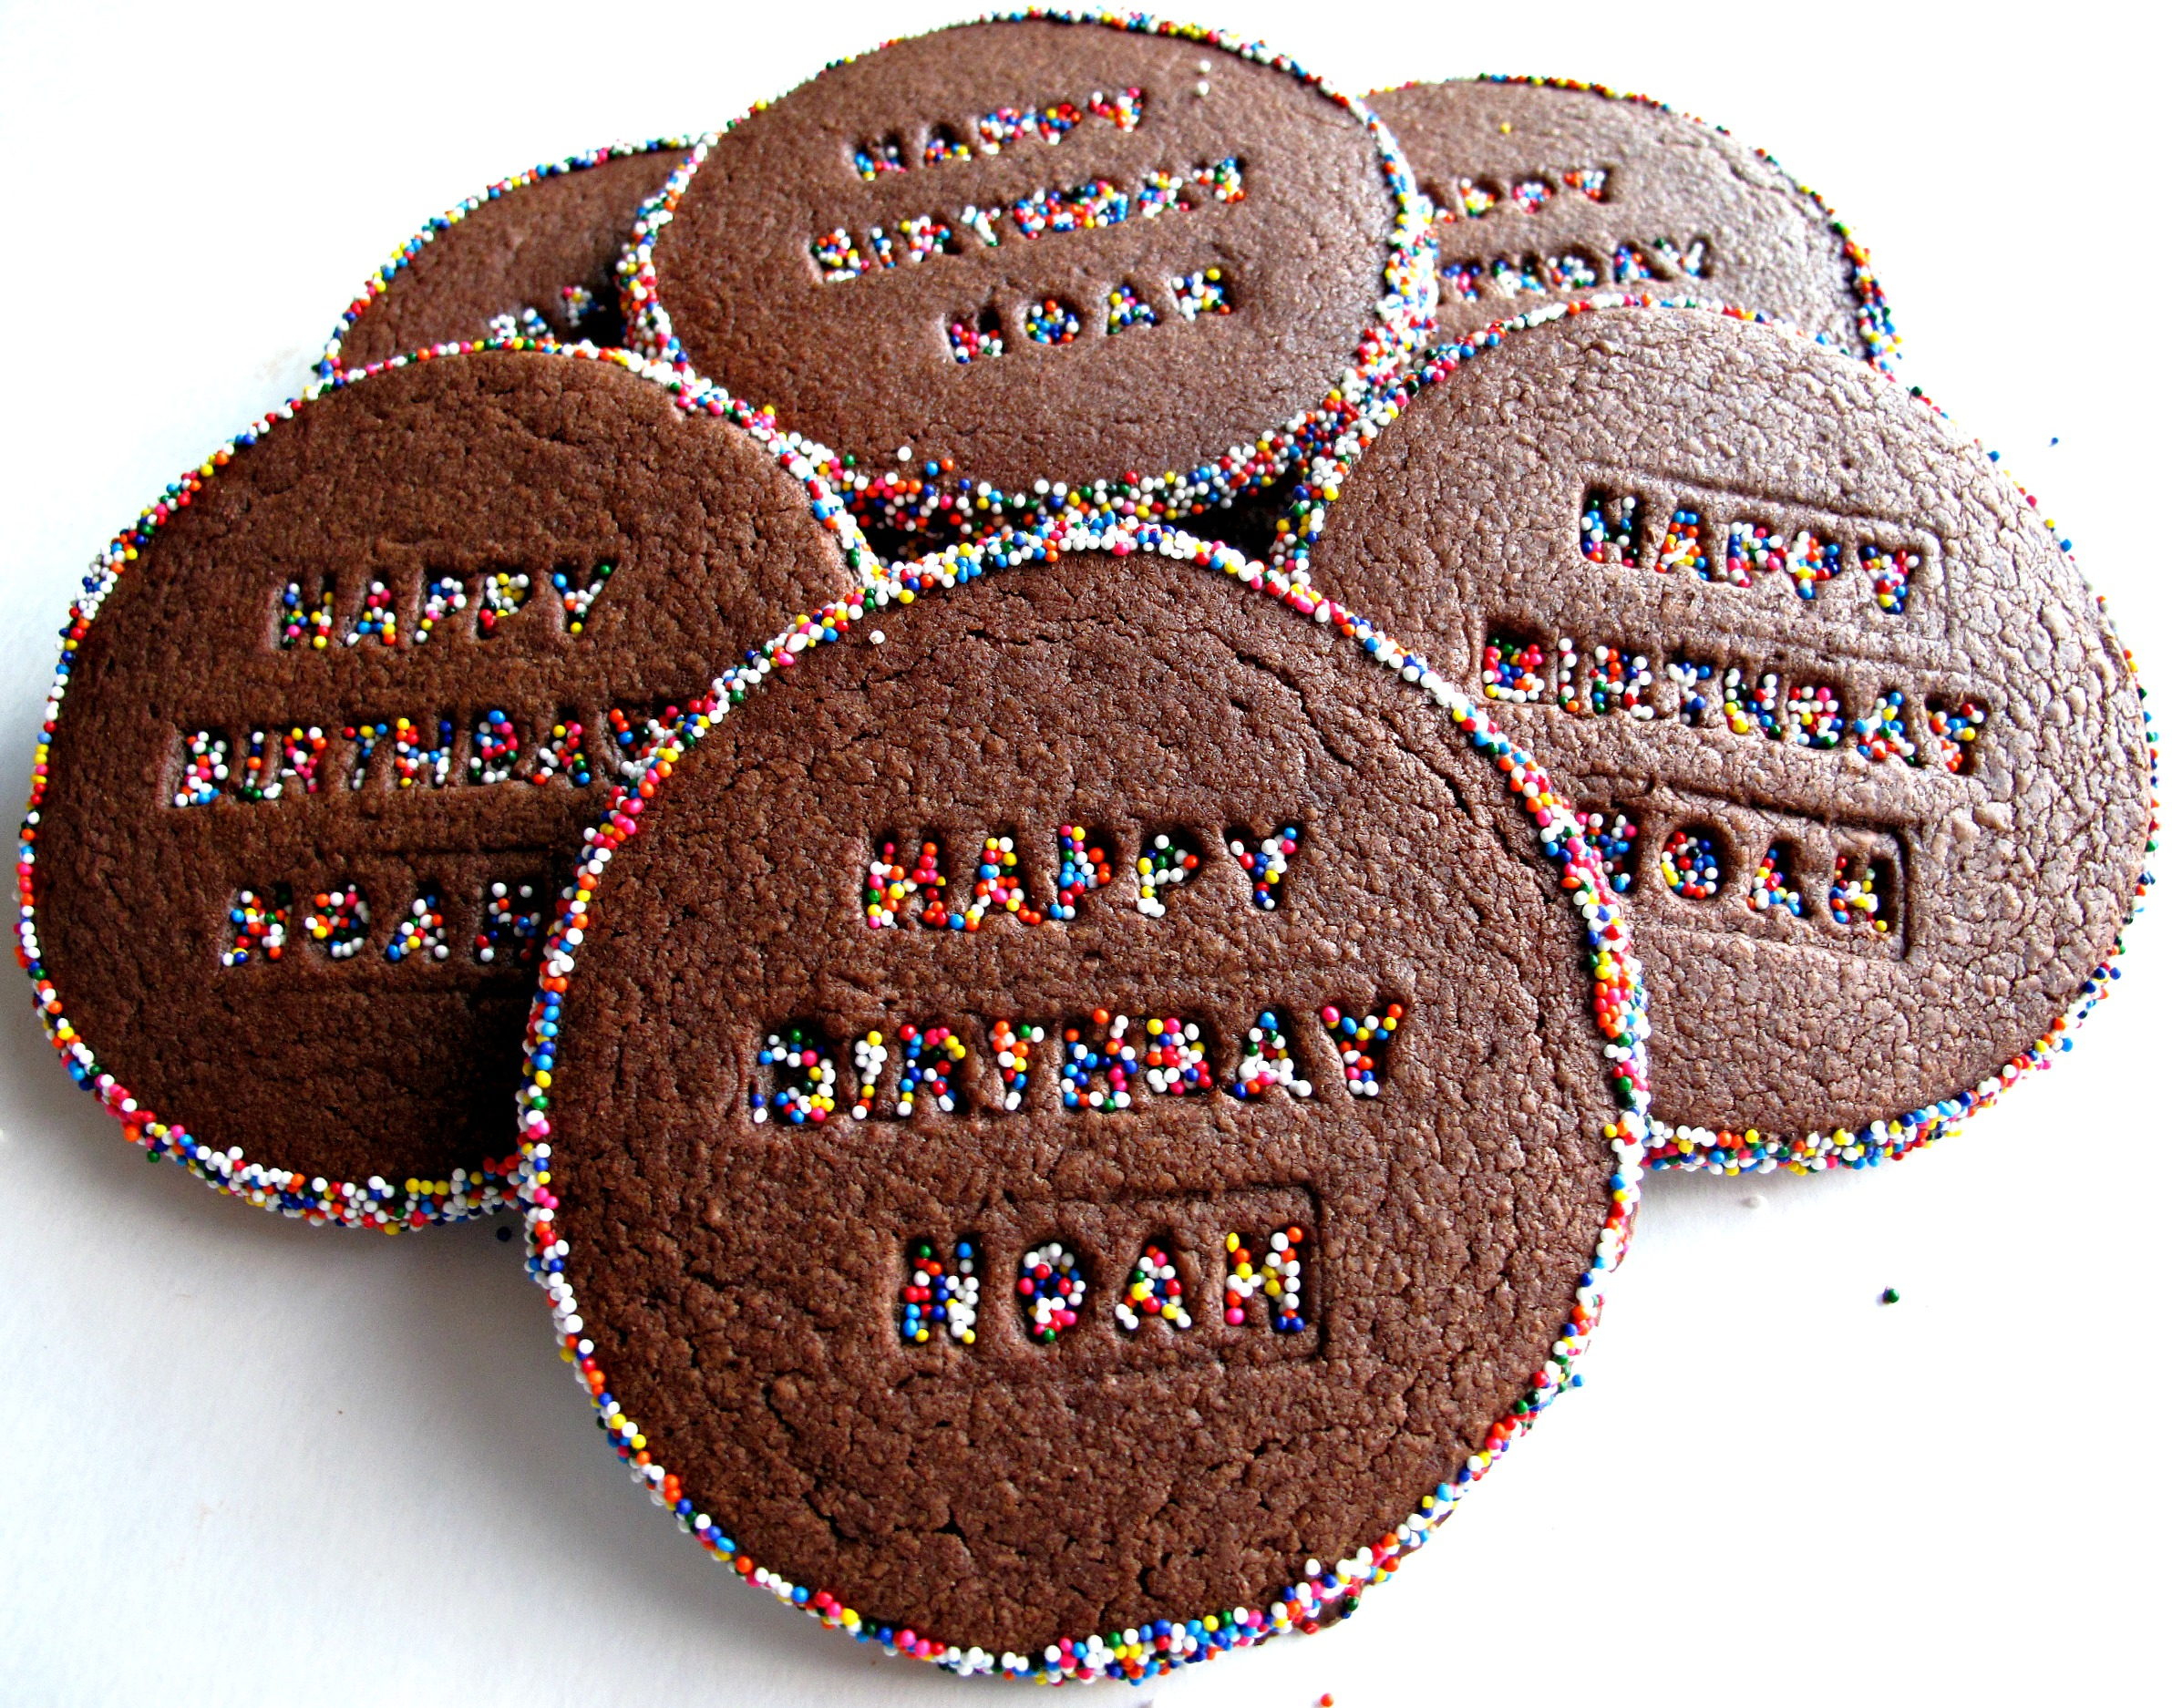 Chocolate cookies with multicolored sprinkles around the edges and on the imprinted words on each cookie.